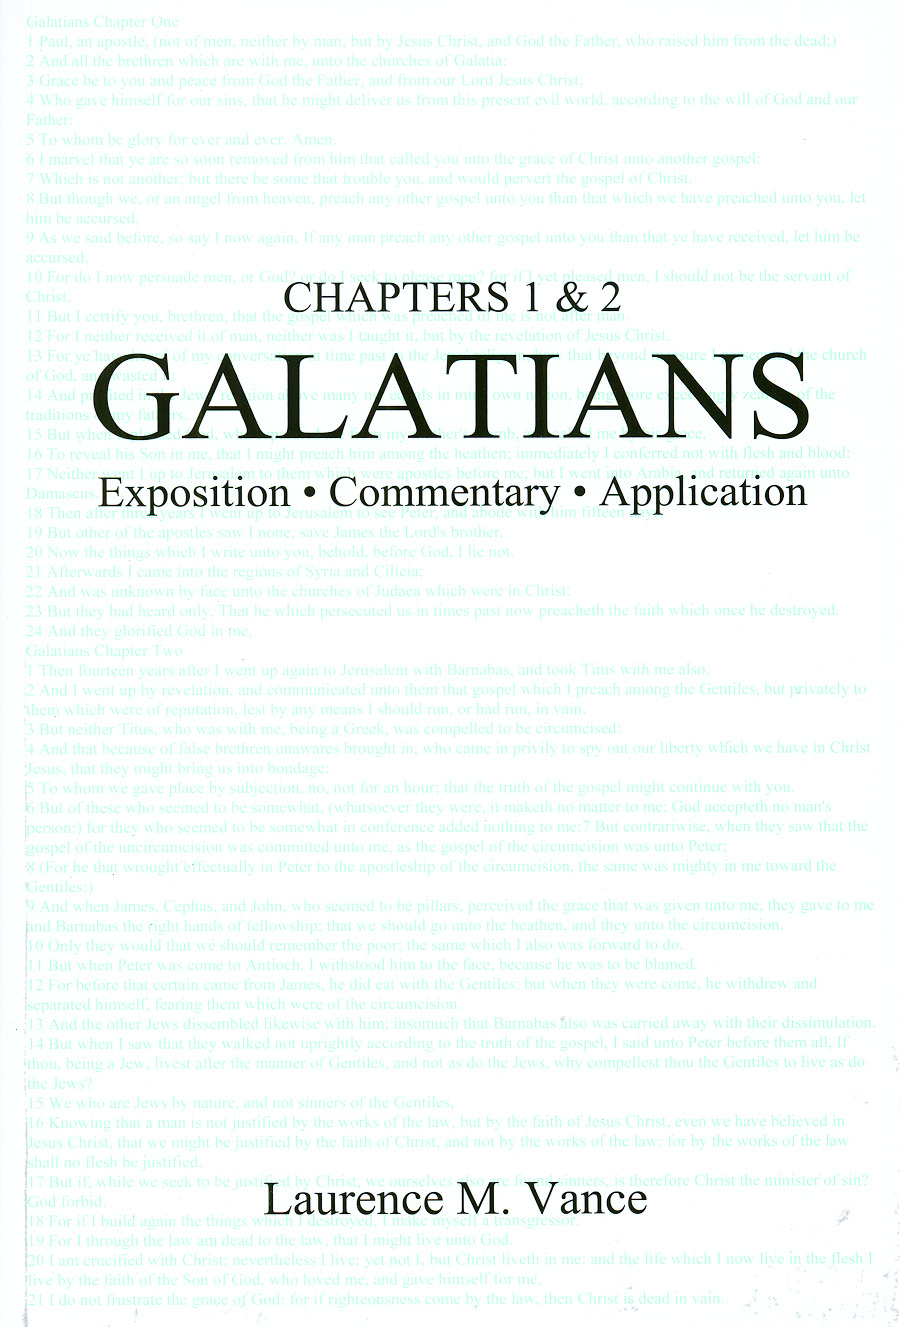 Galatians 1 & 2: Exposition, Commentary, Application, 168 pages, paperback, $9.95